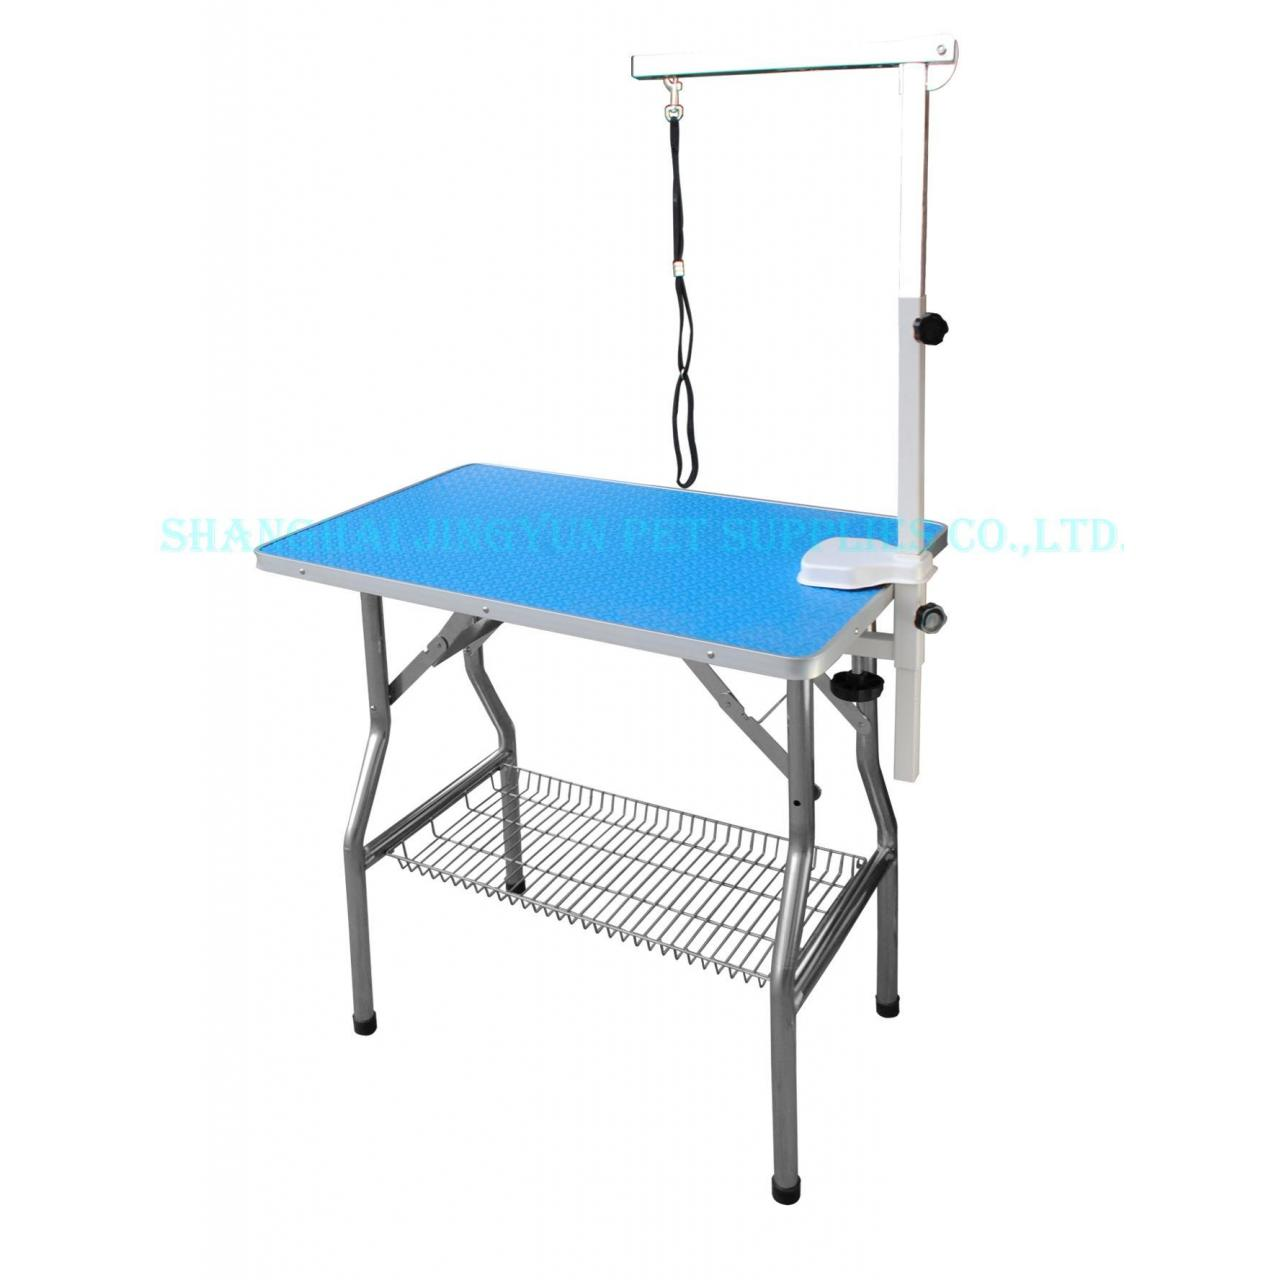 Foldable Table FT-3 Foladable Table Manufactures